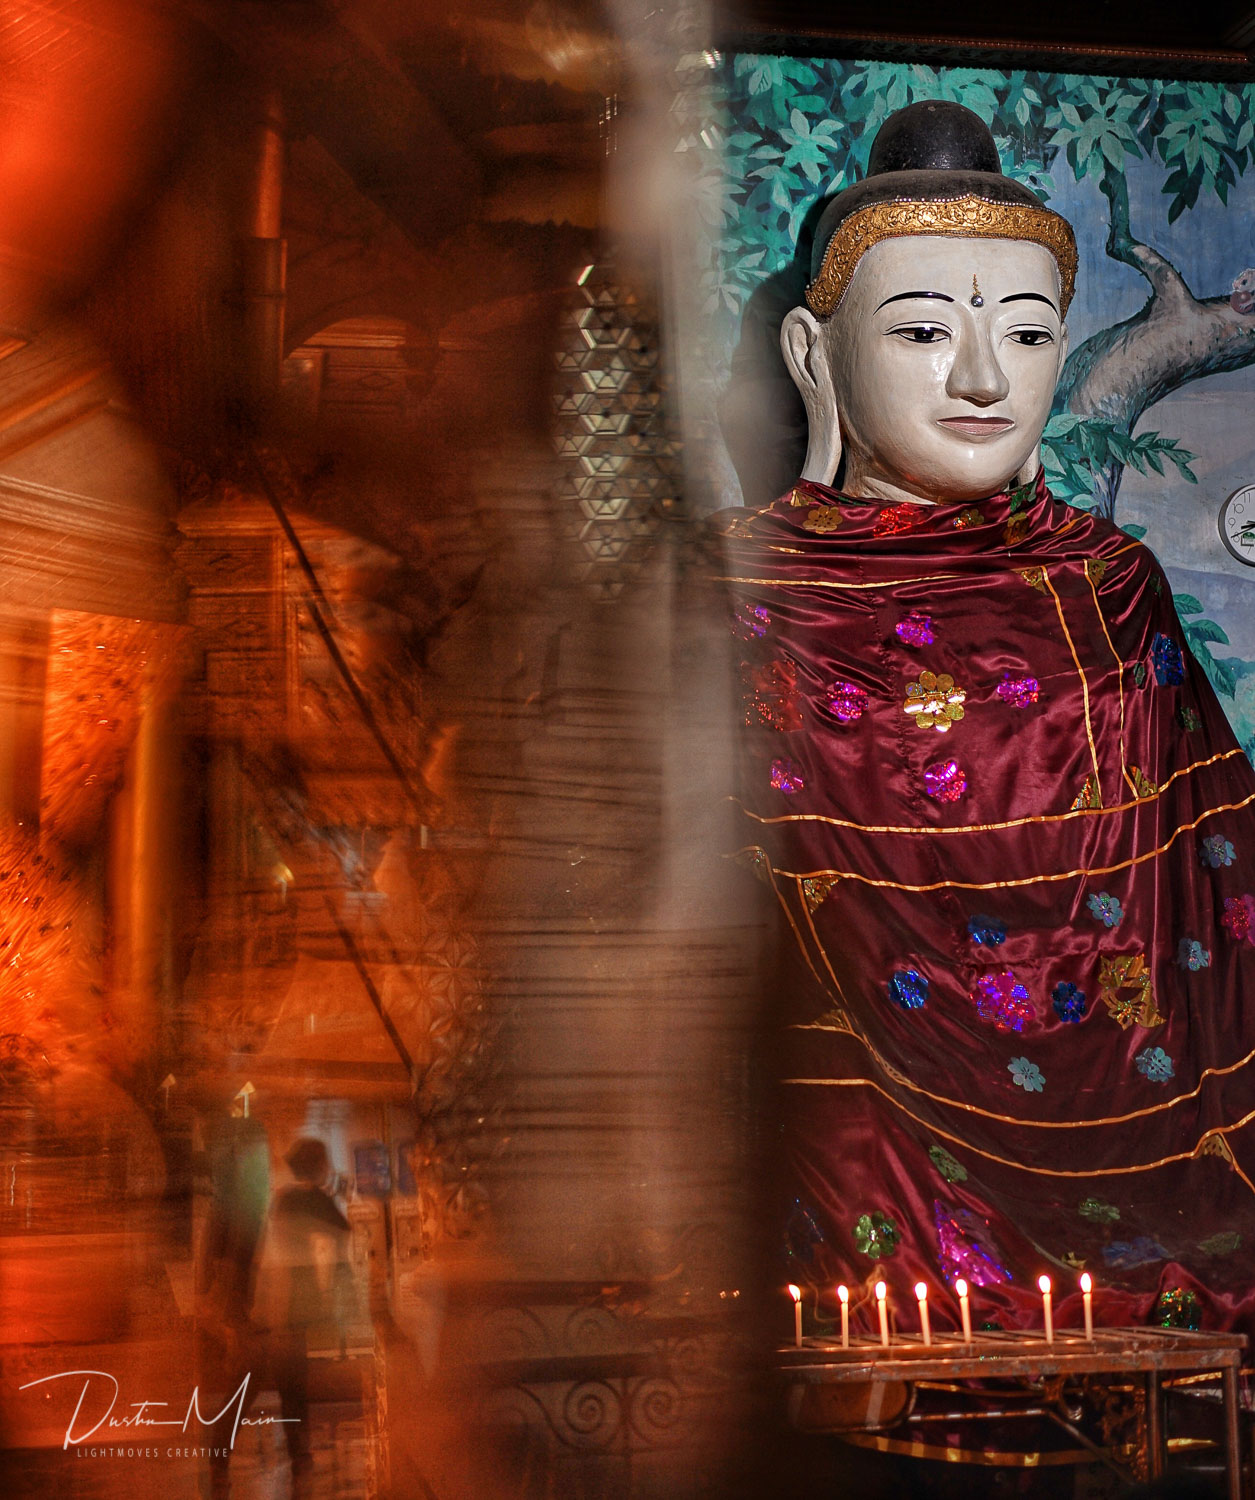 I'm a sucker to a reason to reflect, and Shwedagon always delivers an opportunity to look both outward and in.  © Dustin Main 2017